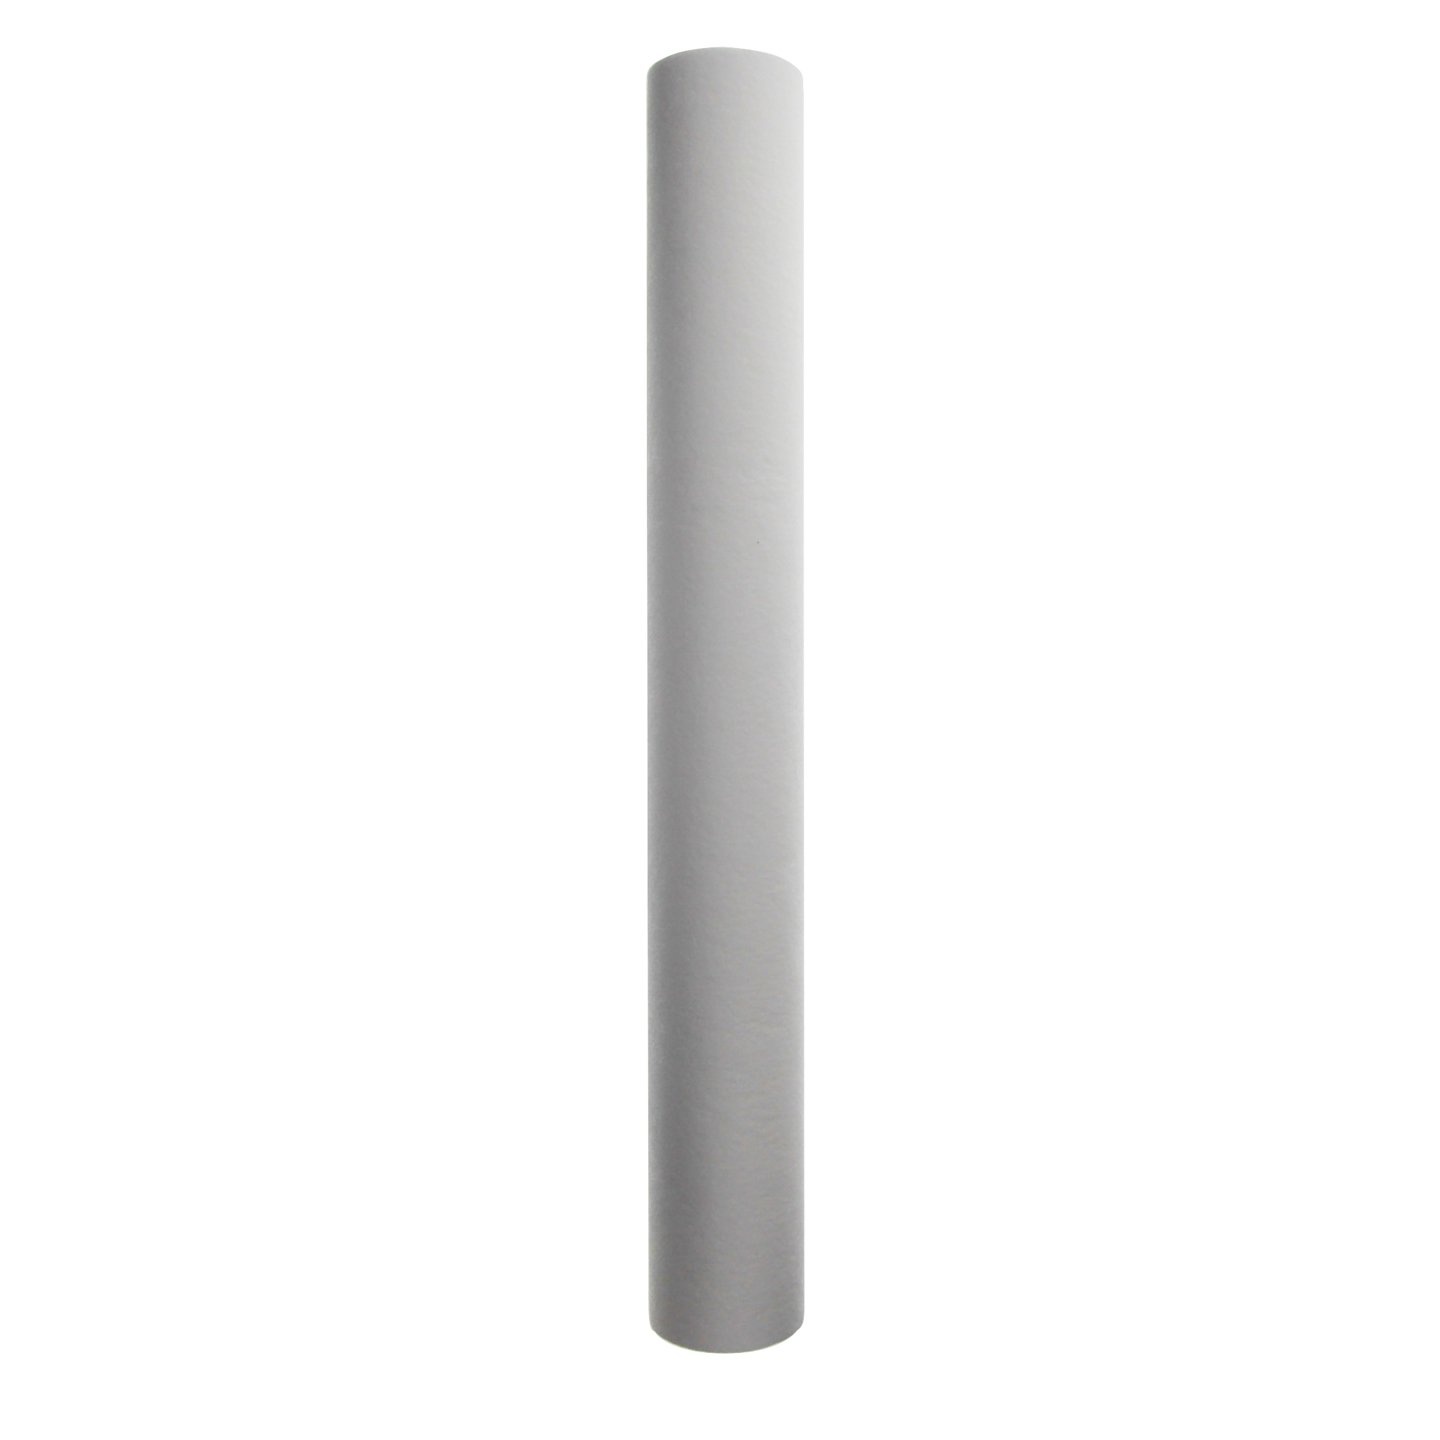 Tier1 Pentek PD-10-20 Comparable 10 Micron 20 x 2.5 Inch Whole House Sediment Water Filter